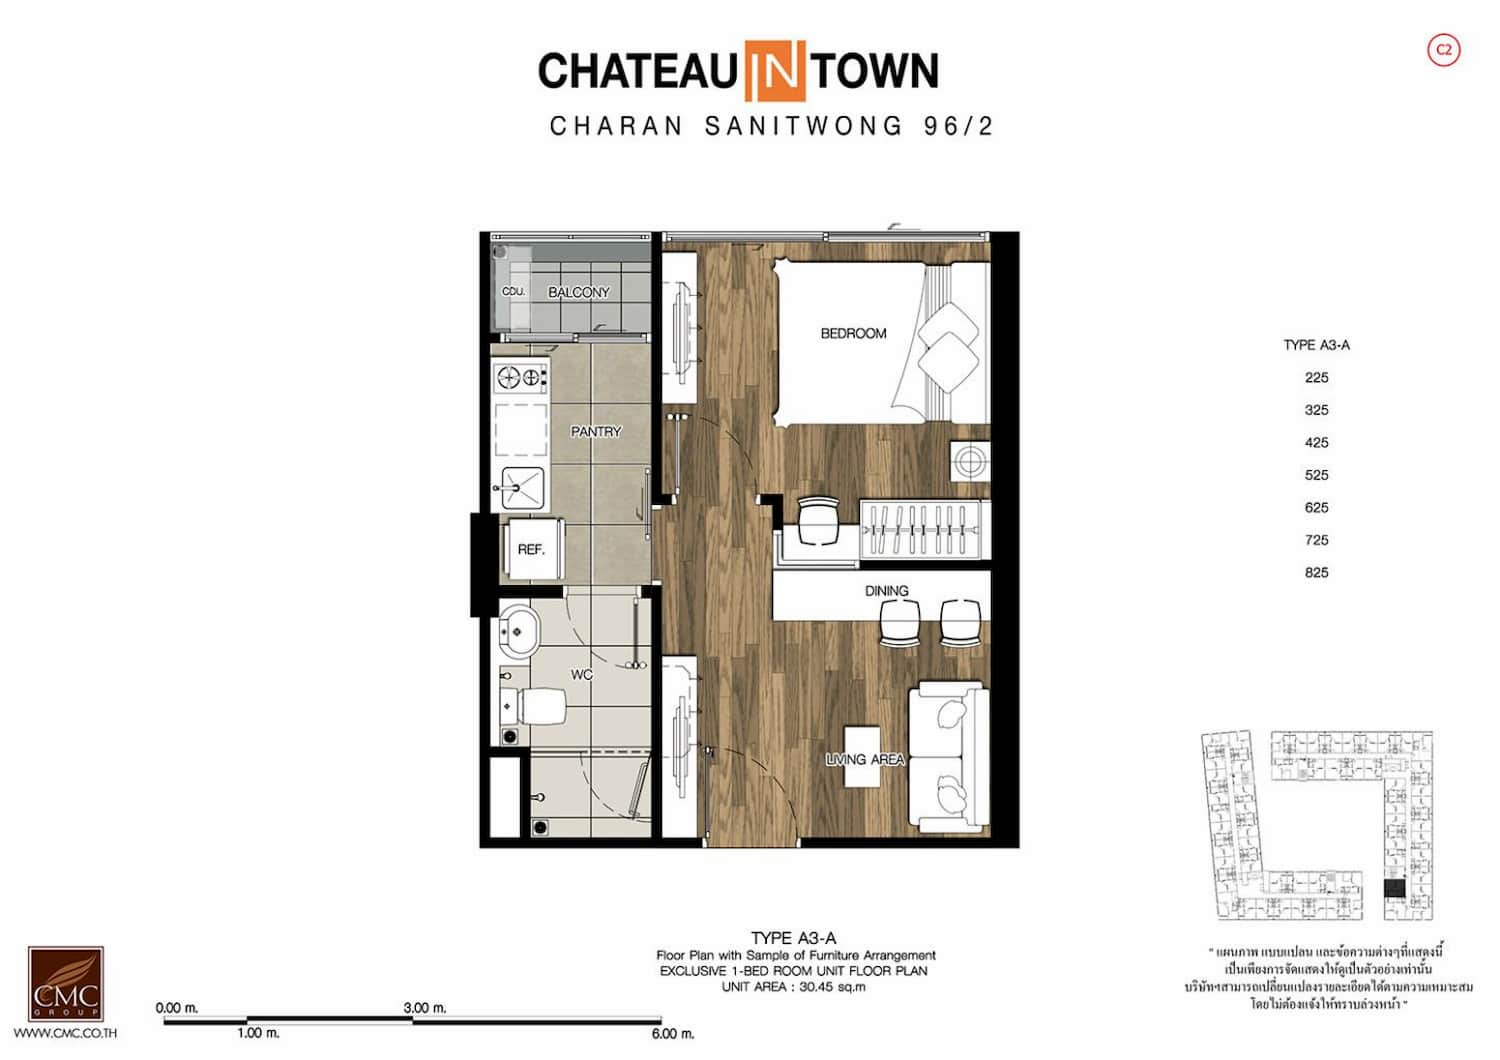 condo chateauintown charan96